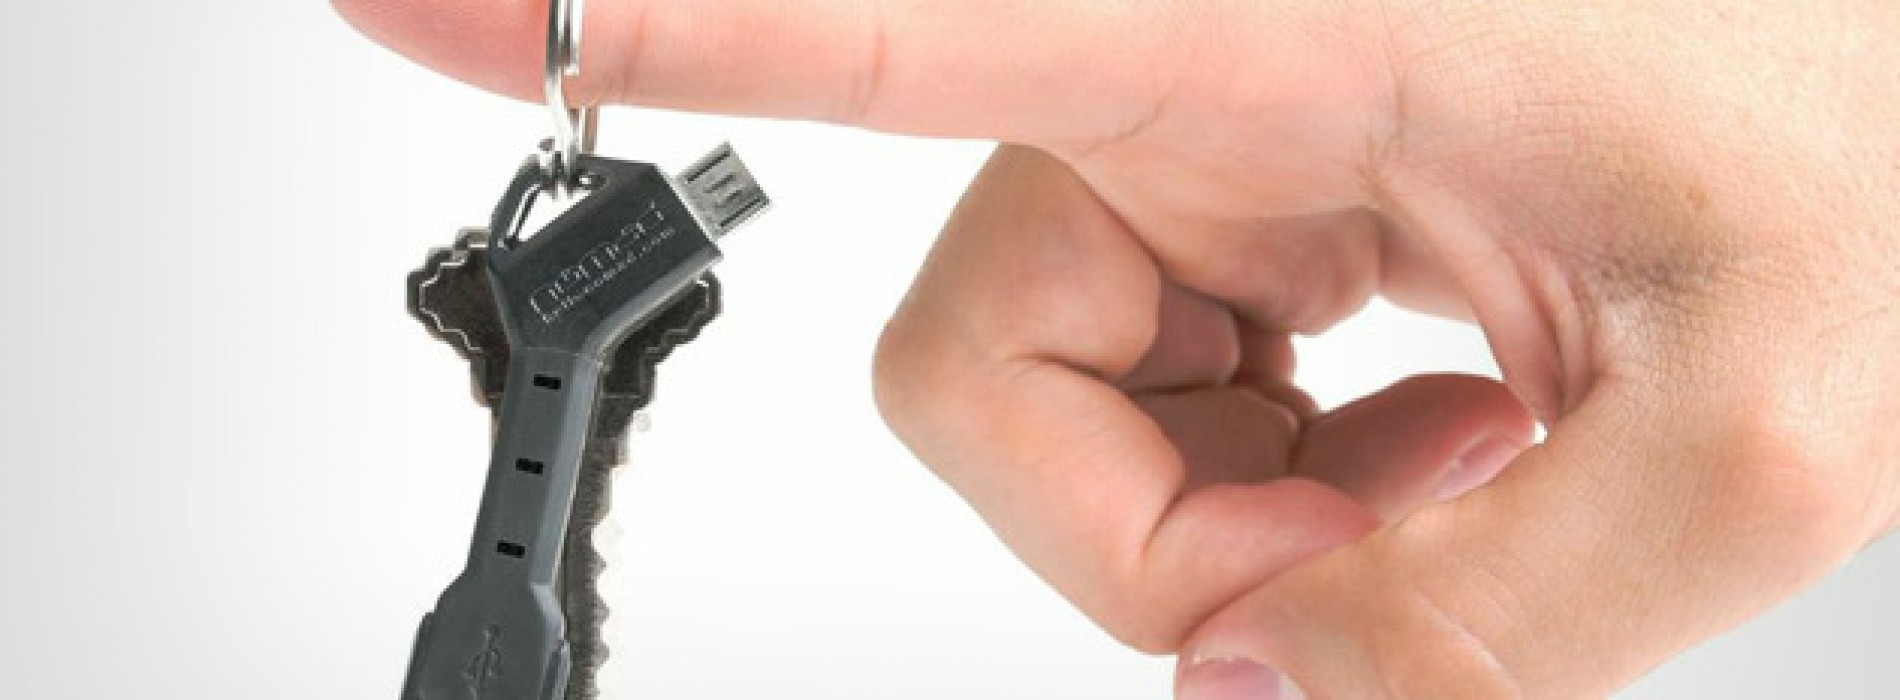 ChargeKey: Carry a USB cable on your keychain for charging anywhere [Deal of the Day]